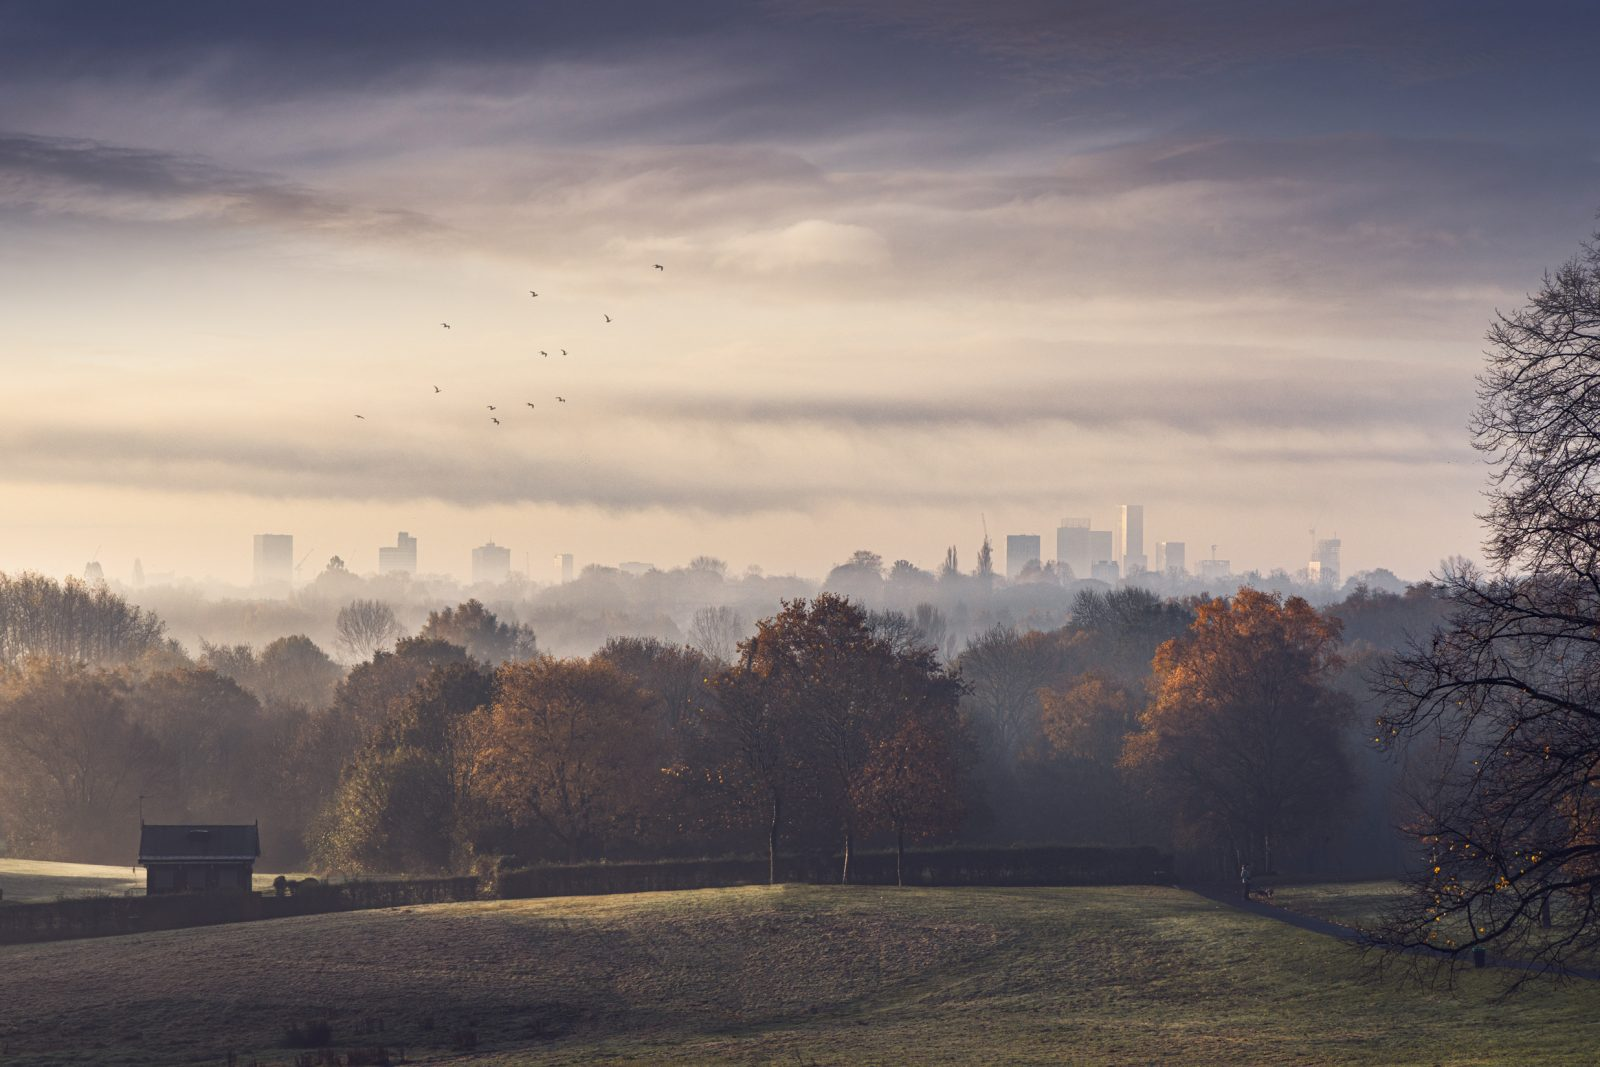 Eight more of Greater Manchester's best skyline views, according to a local photographer, The Manc